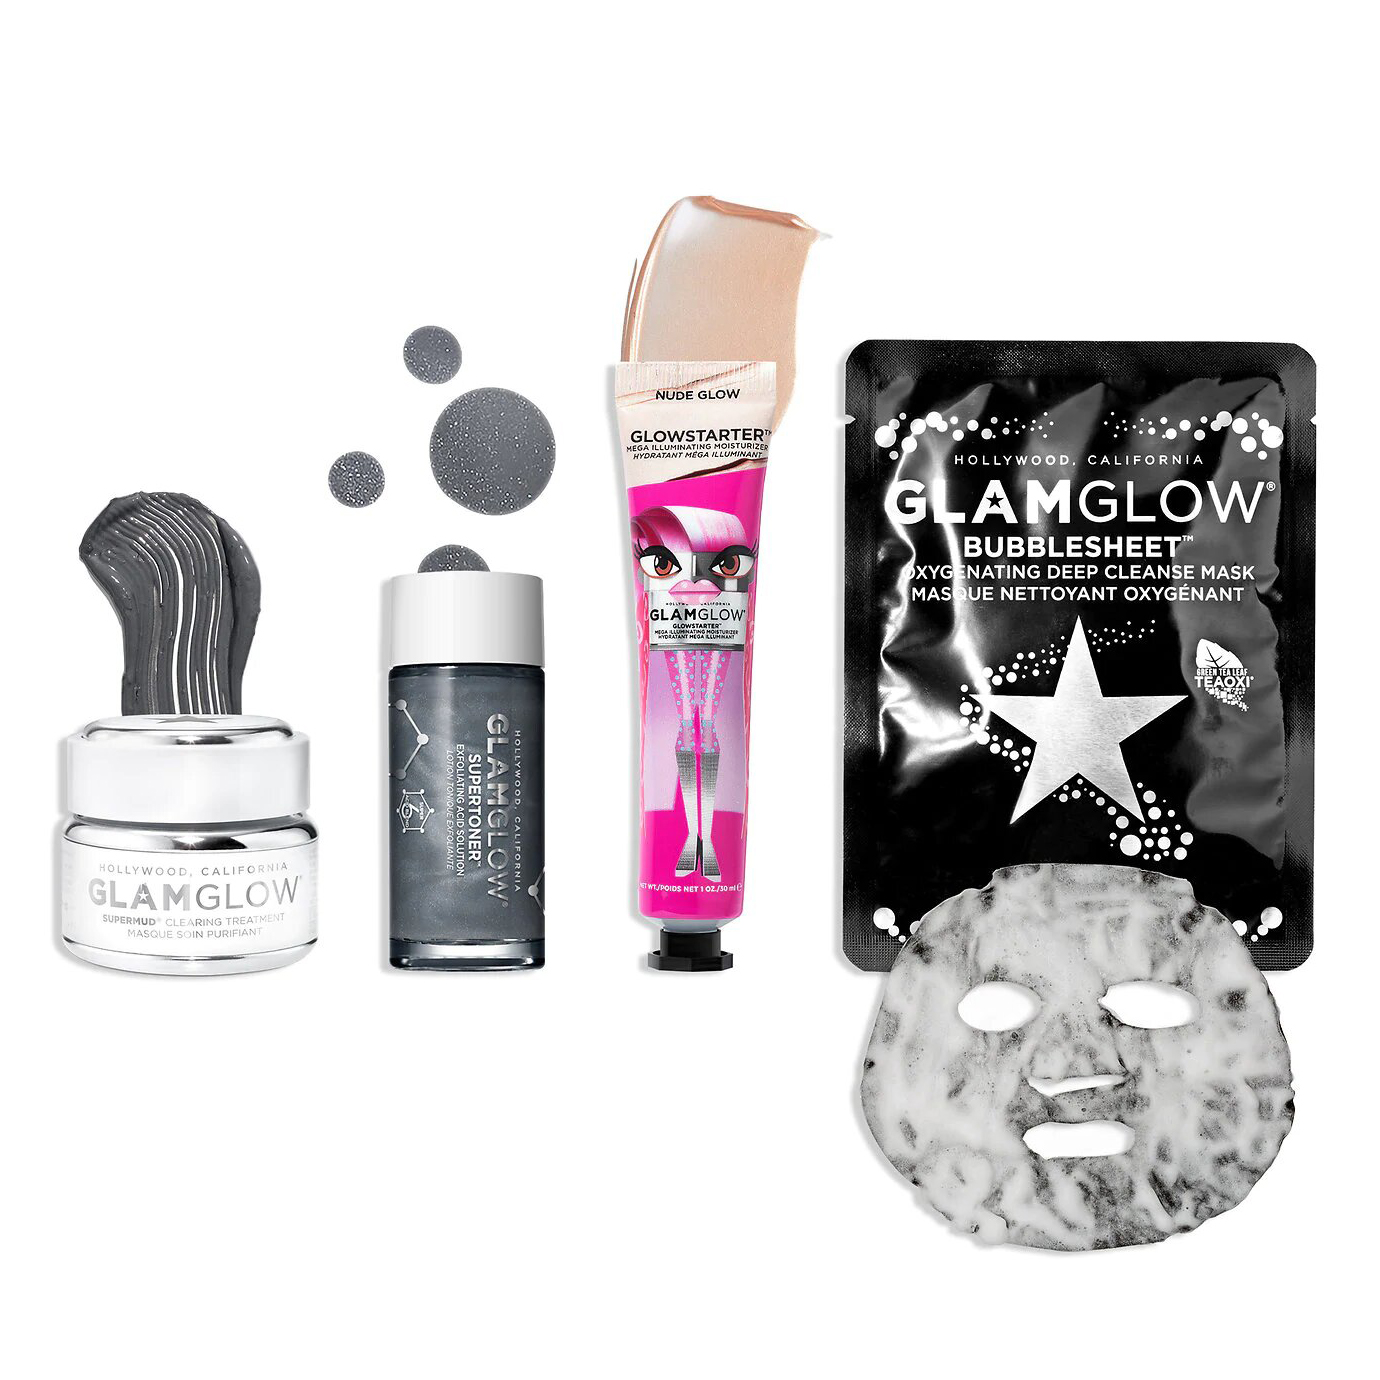 SuperMud Super Clear Pore Clarifying Skin Set GLAMGLOW